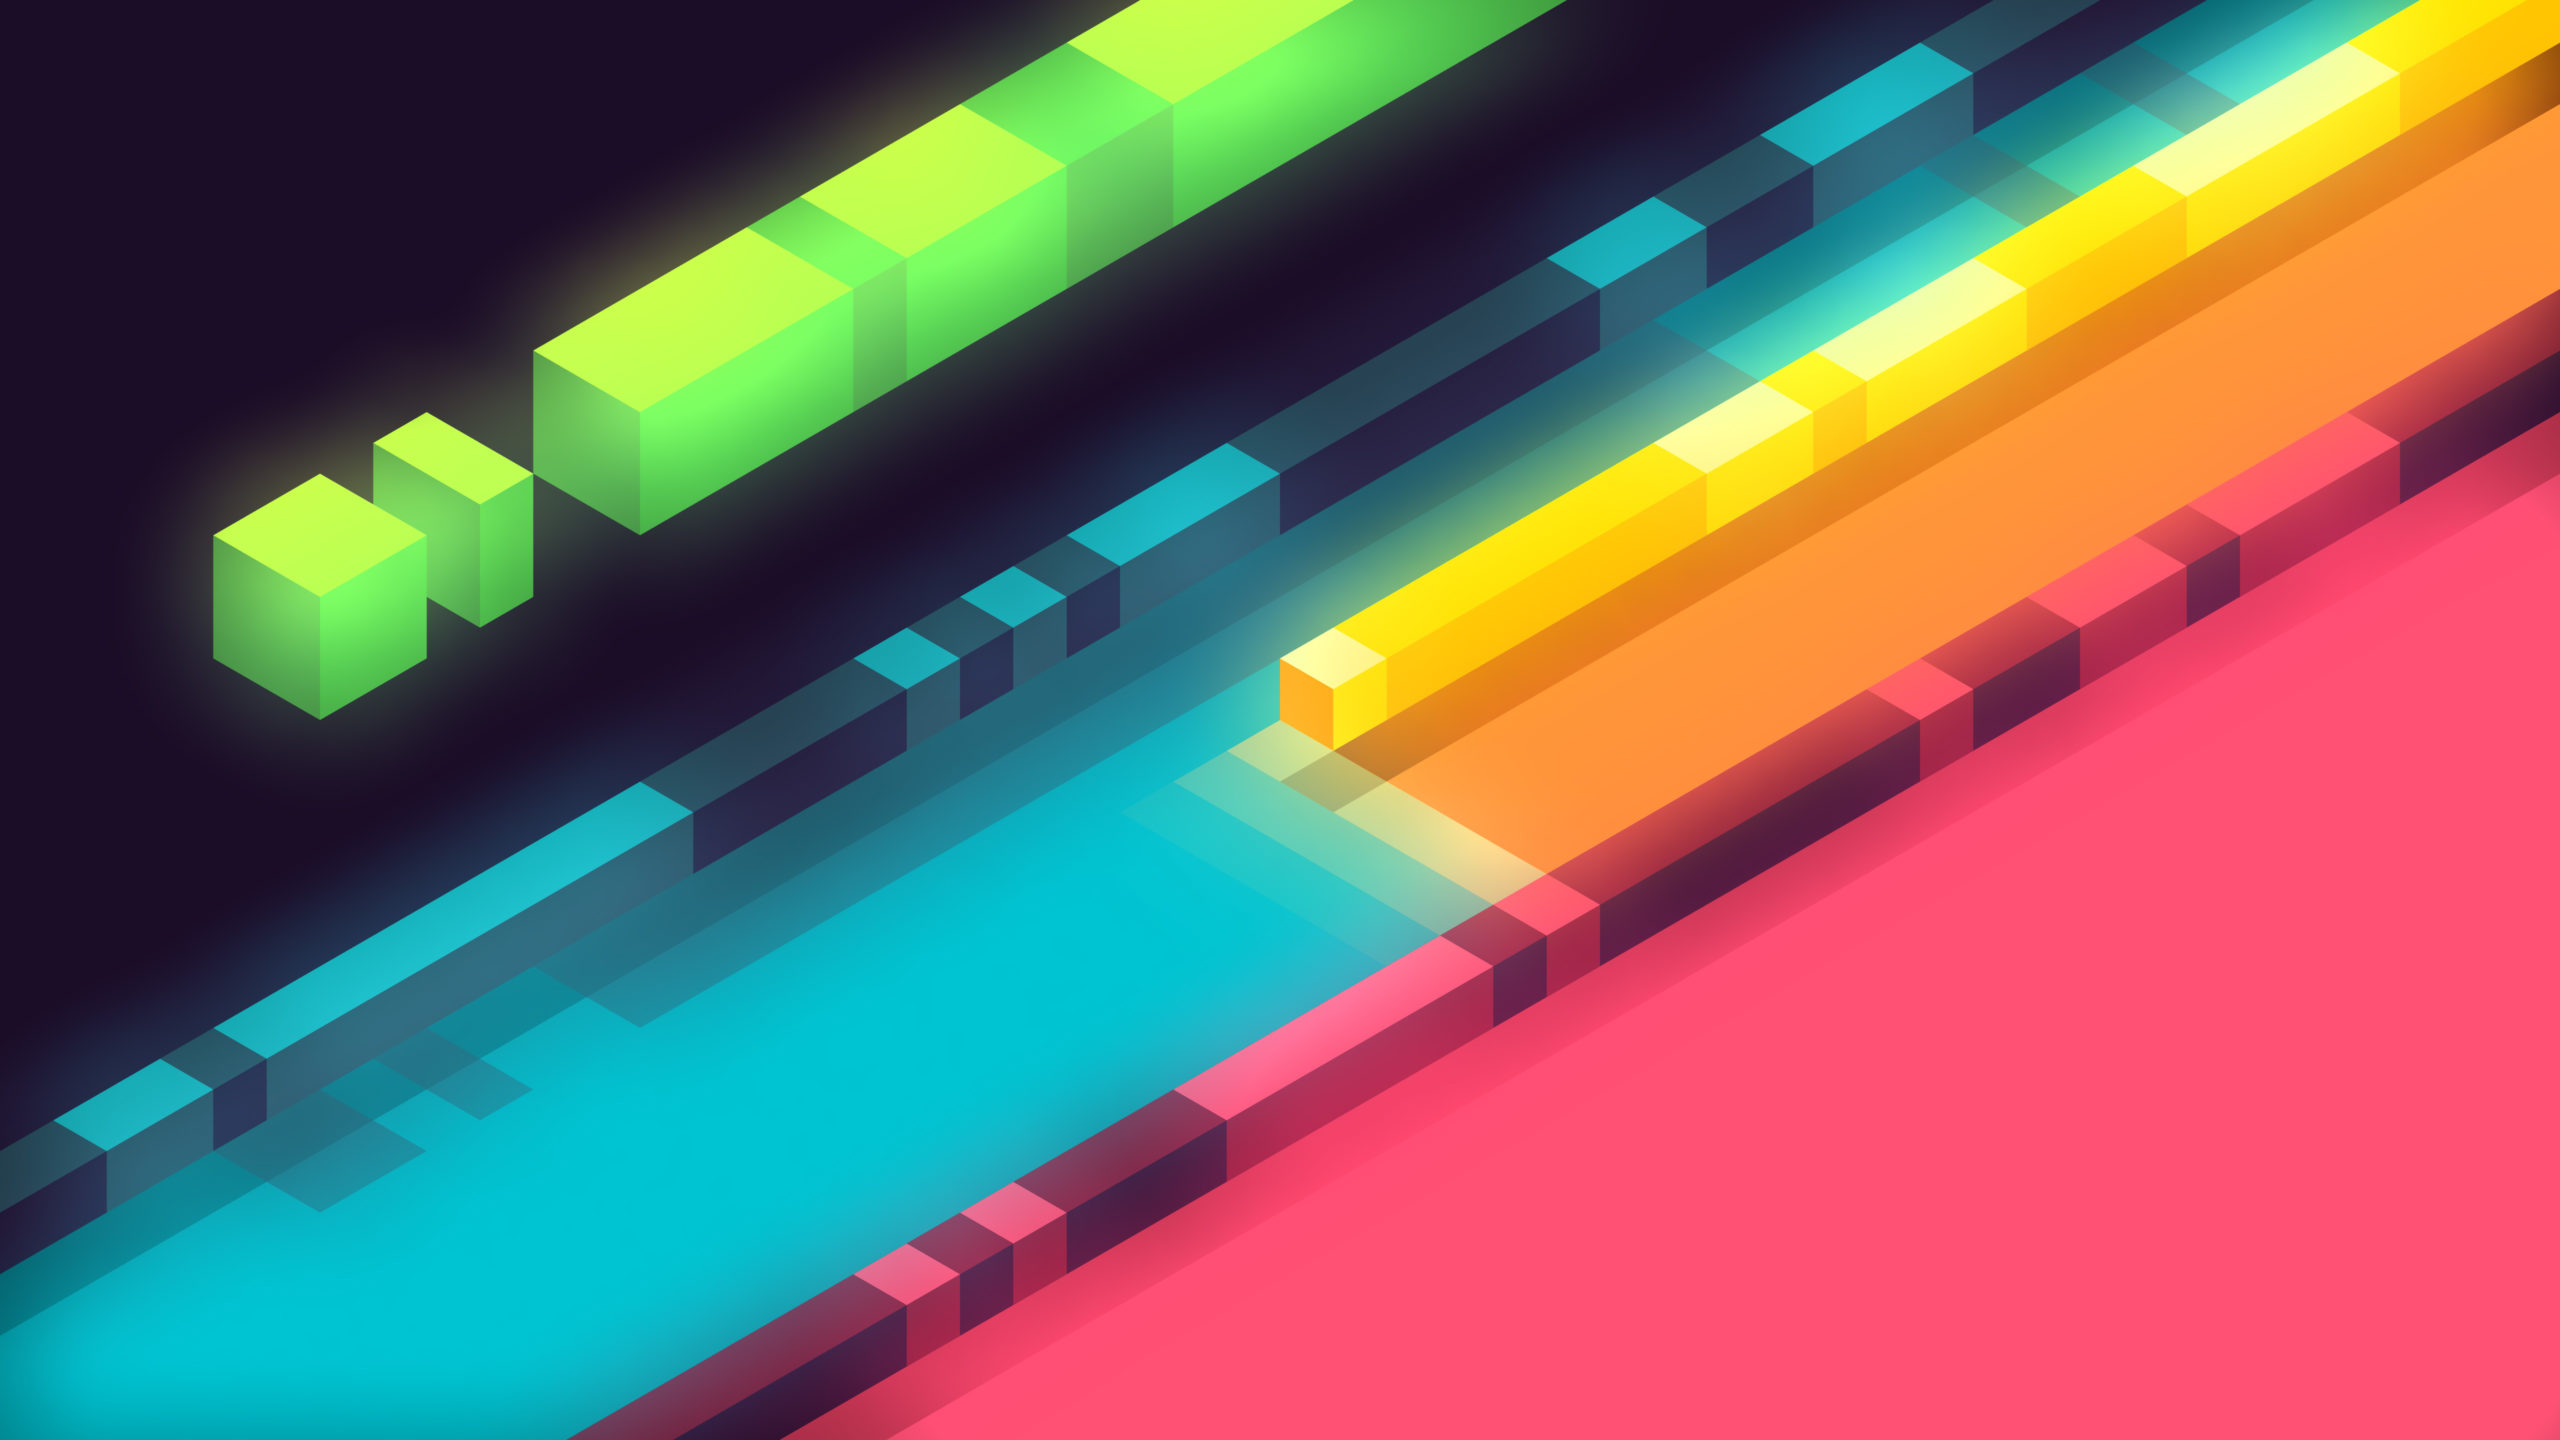 3d Abstract Colorful Shapes Minimalist 5k Zr Wallpaper